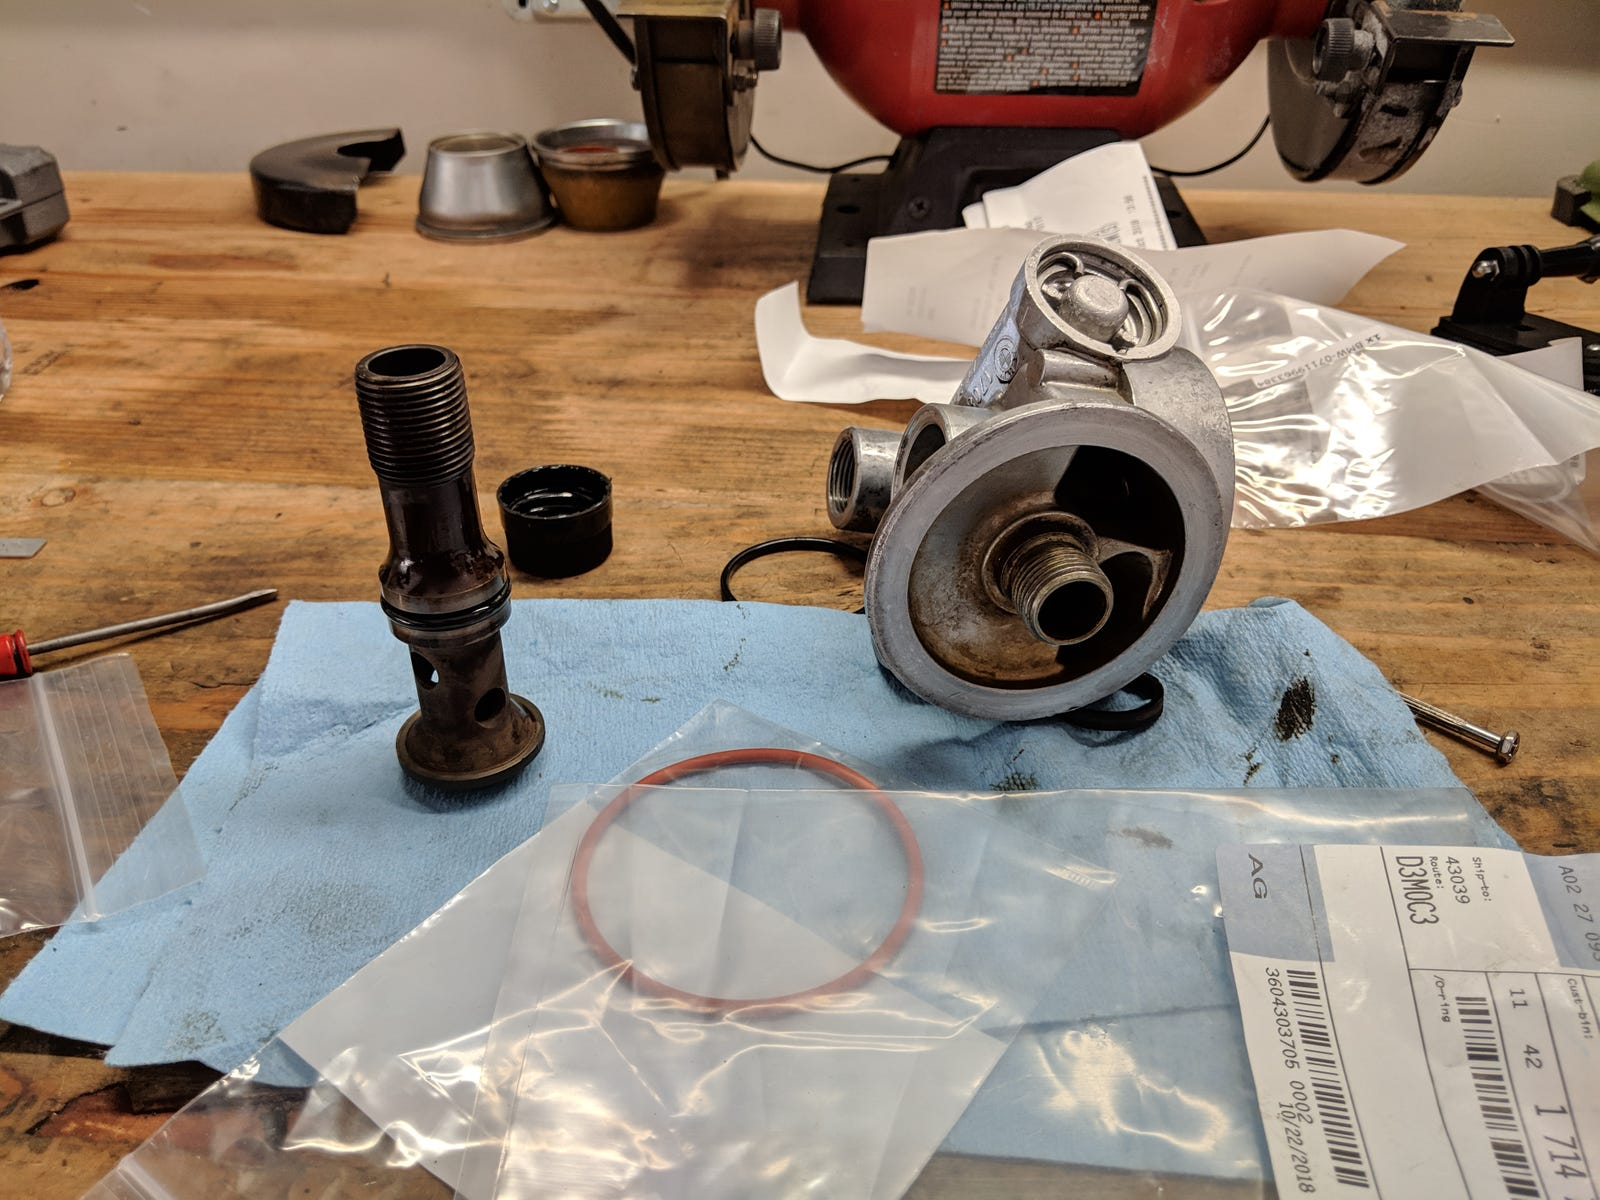 Oil filter tree and securing bolt receiving new o-rings.